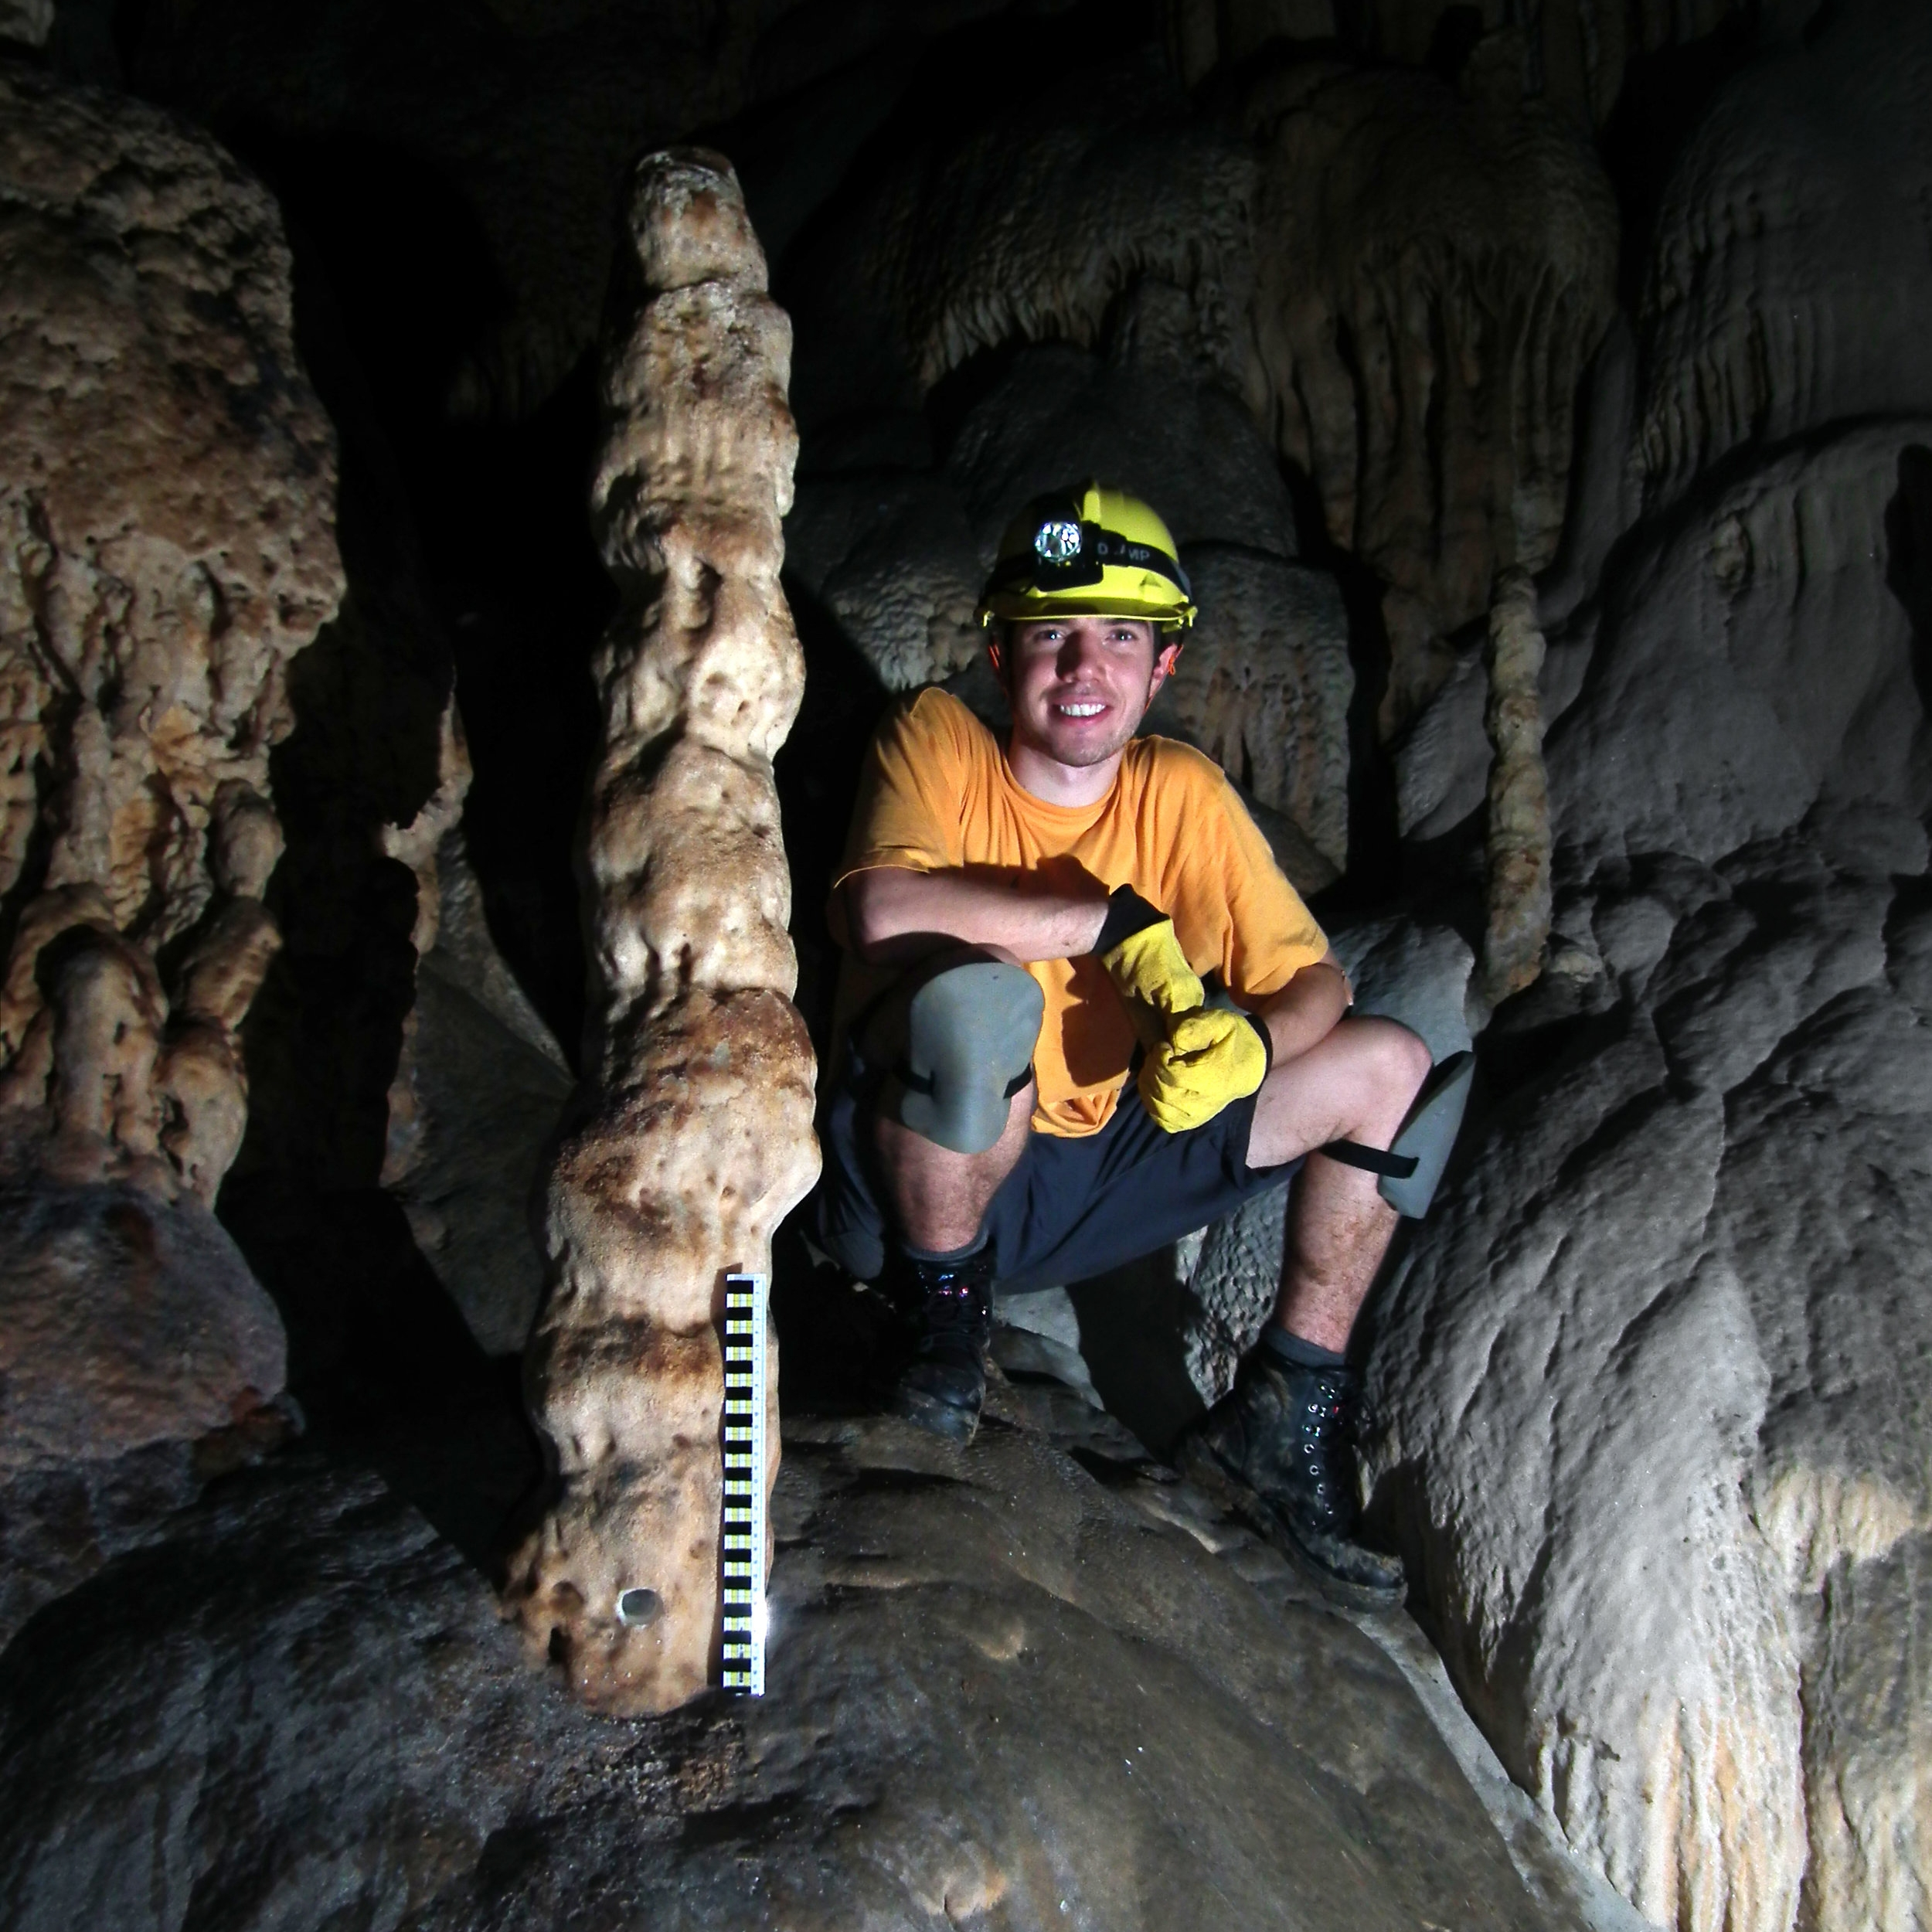 With stalagmite in Sulawesi